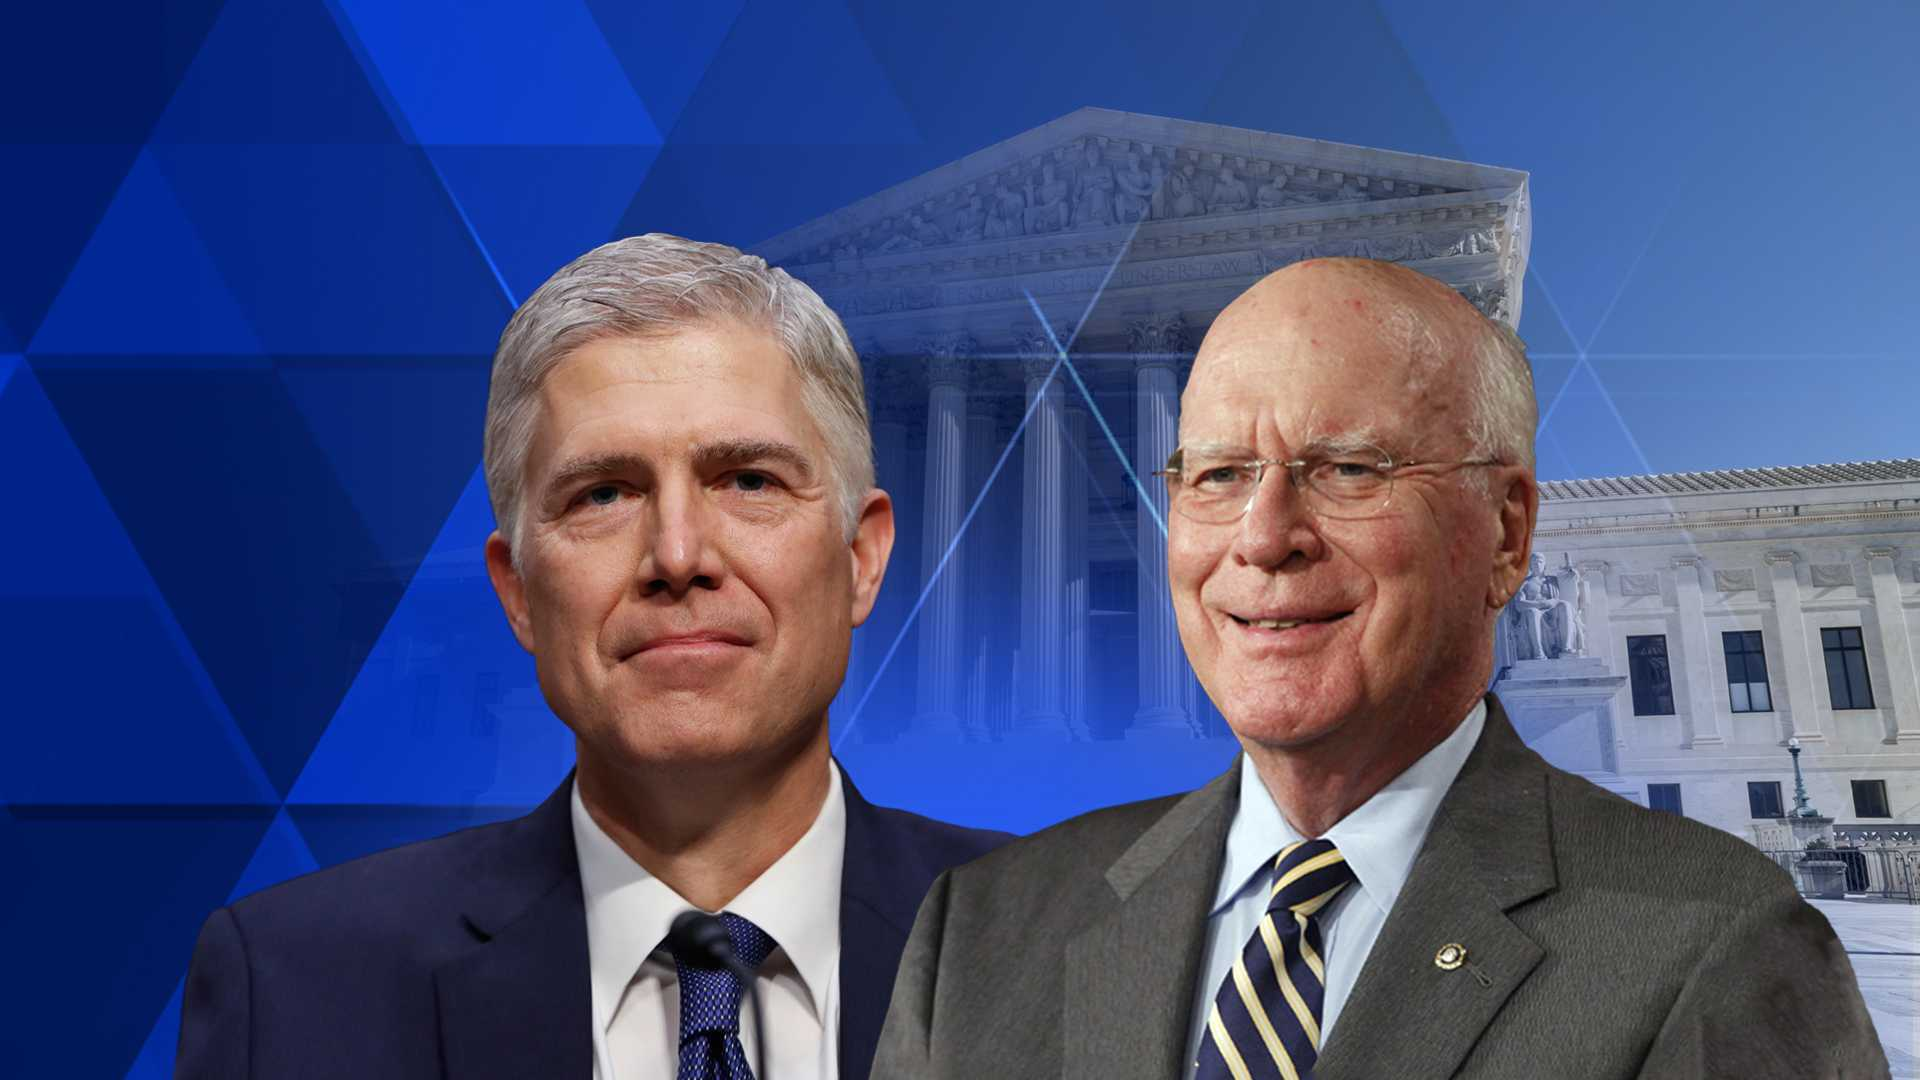 Neil Gorsuch & Patrick Leahy